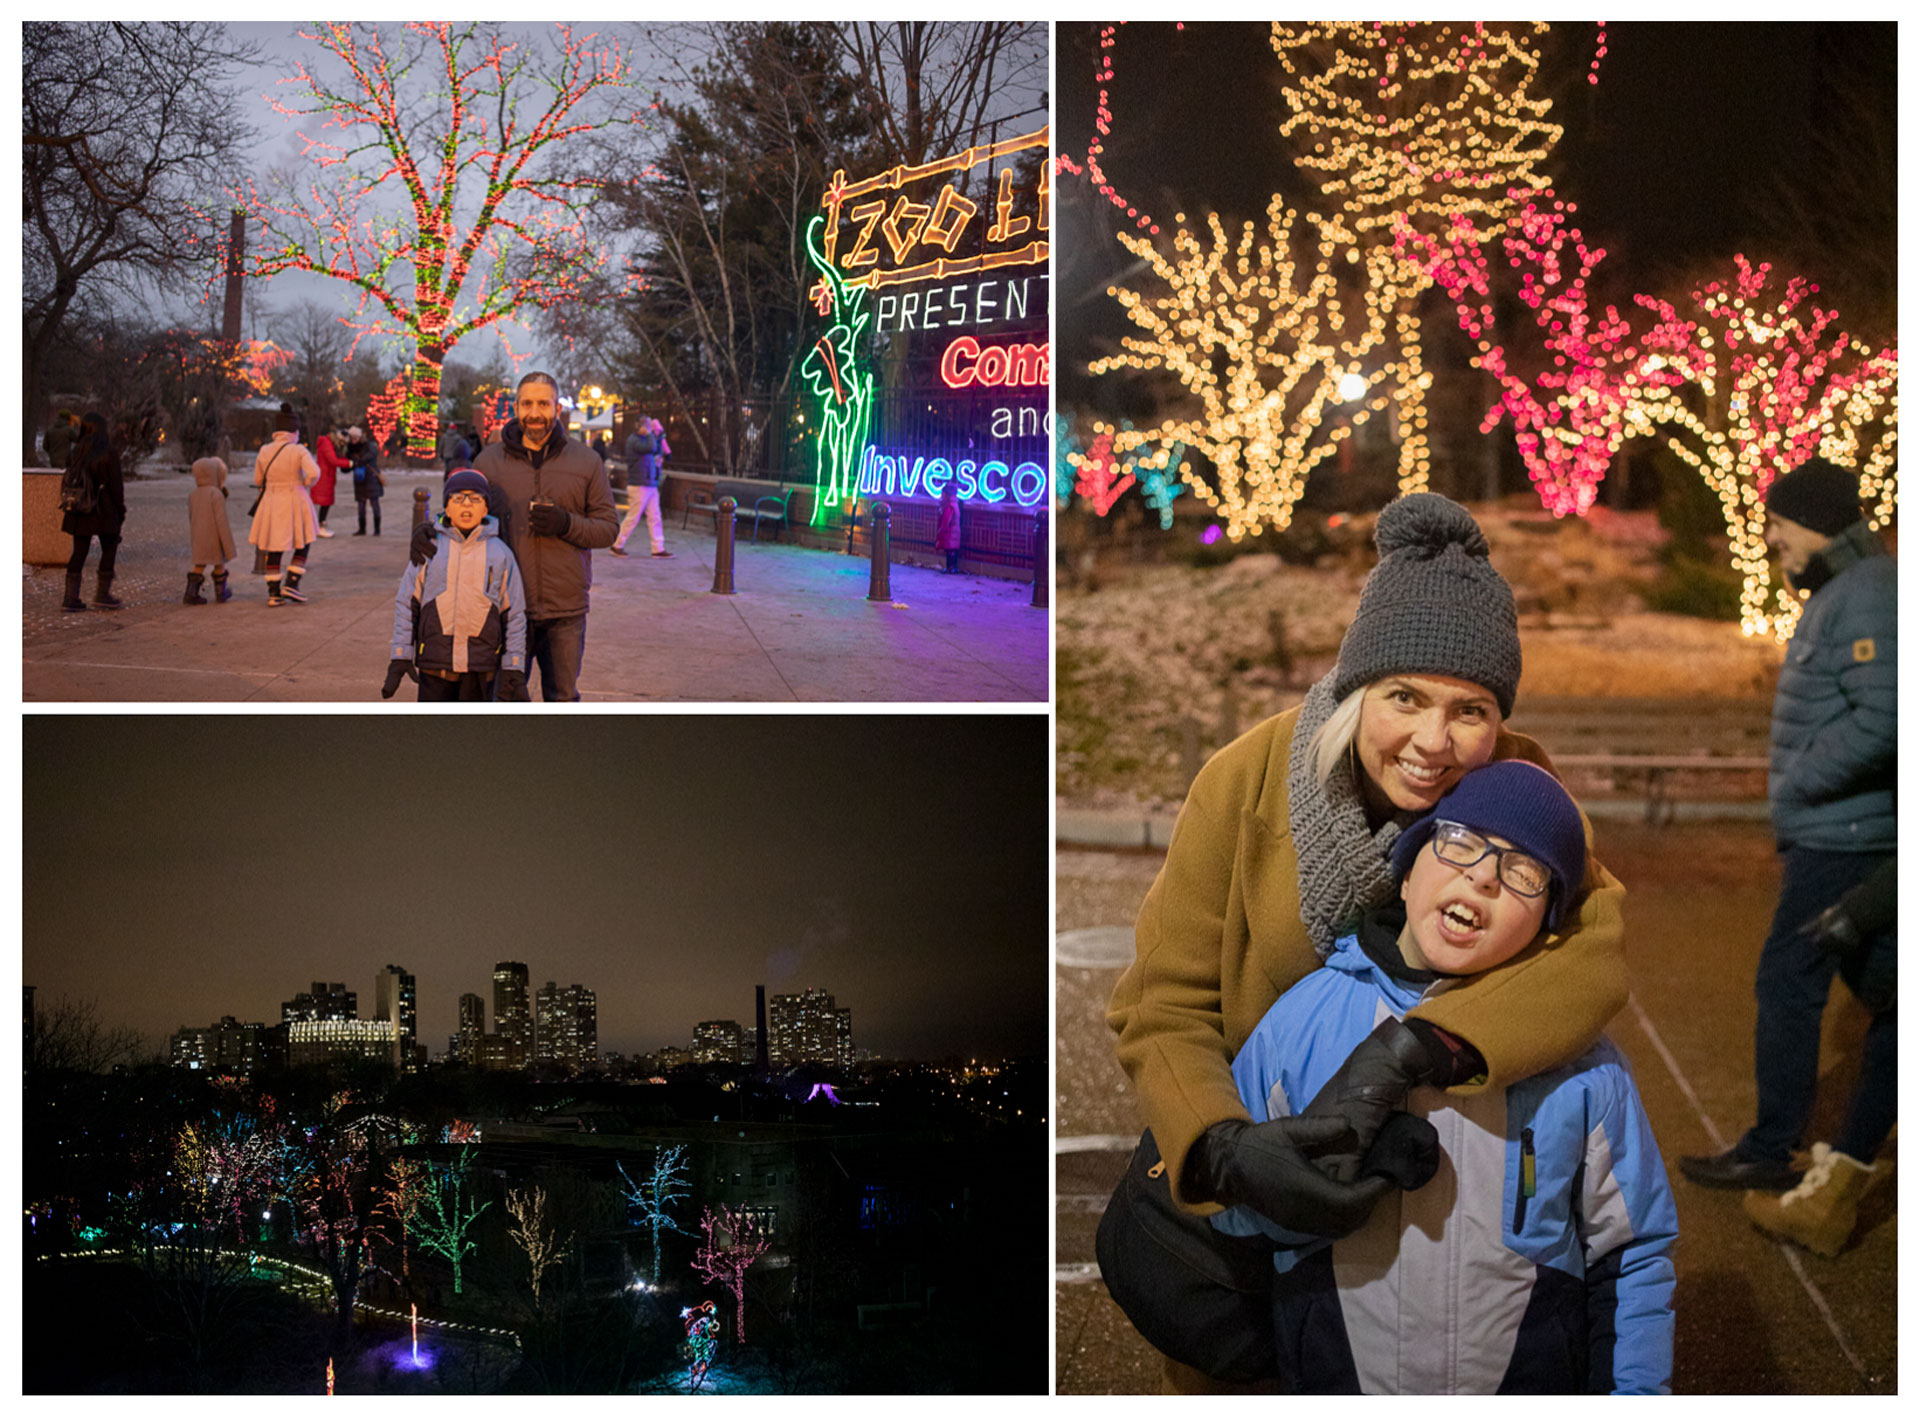 family trip, chicago, wisconsin, winter trip, christmas break, family vacation, city of chicago, madison, chicago zoo lights, christmas lights